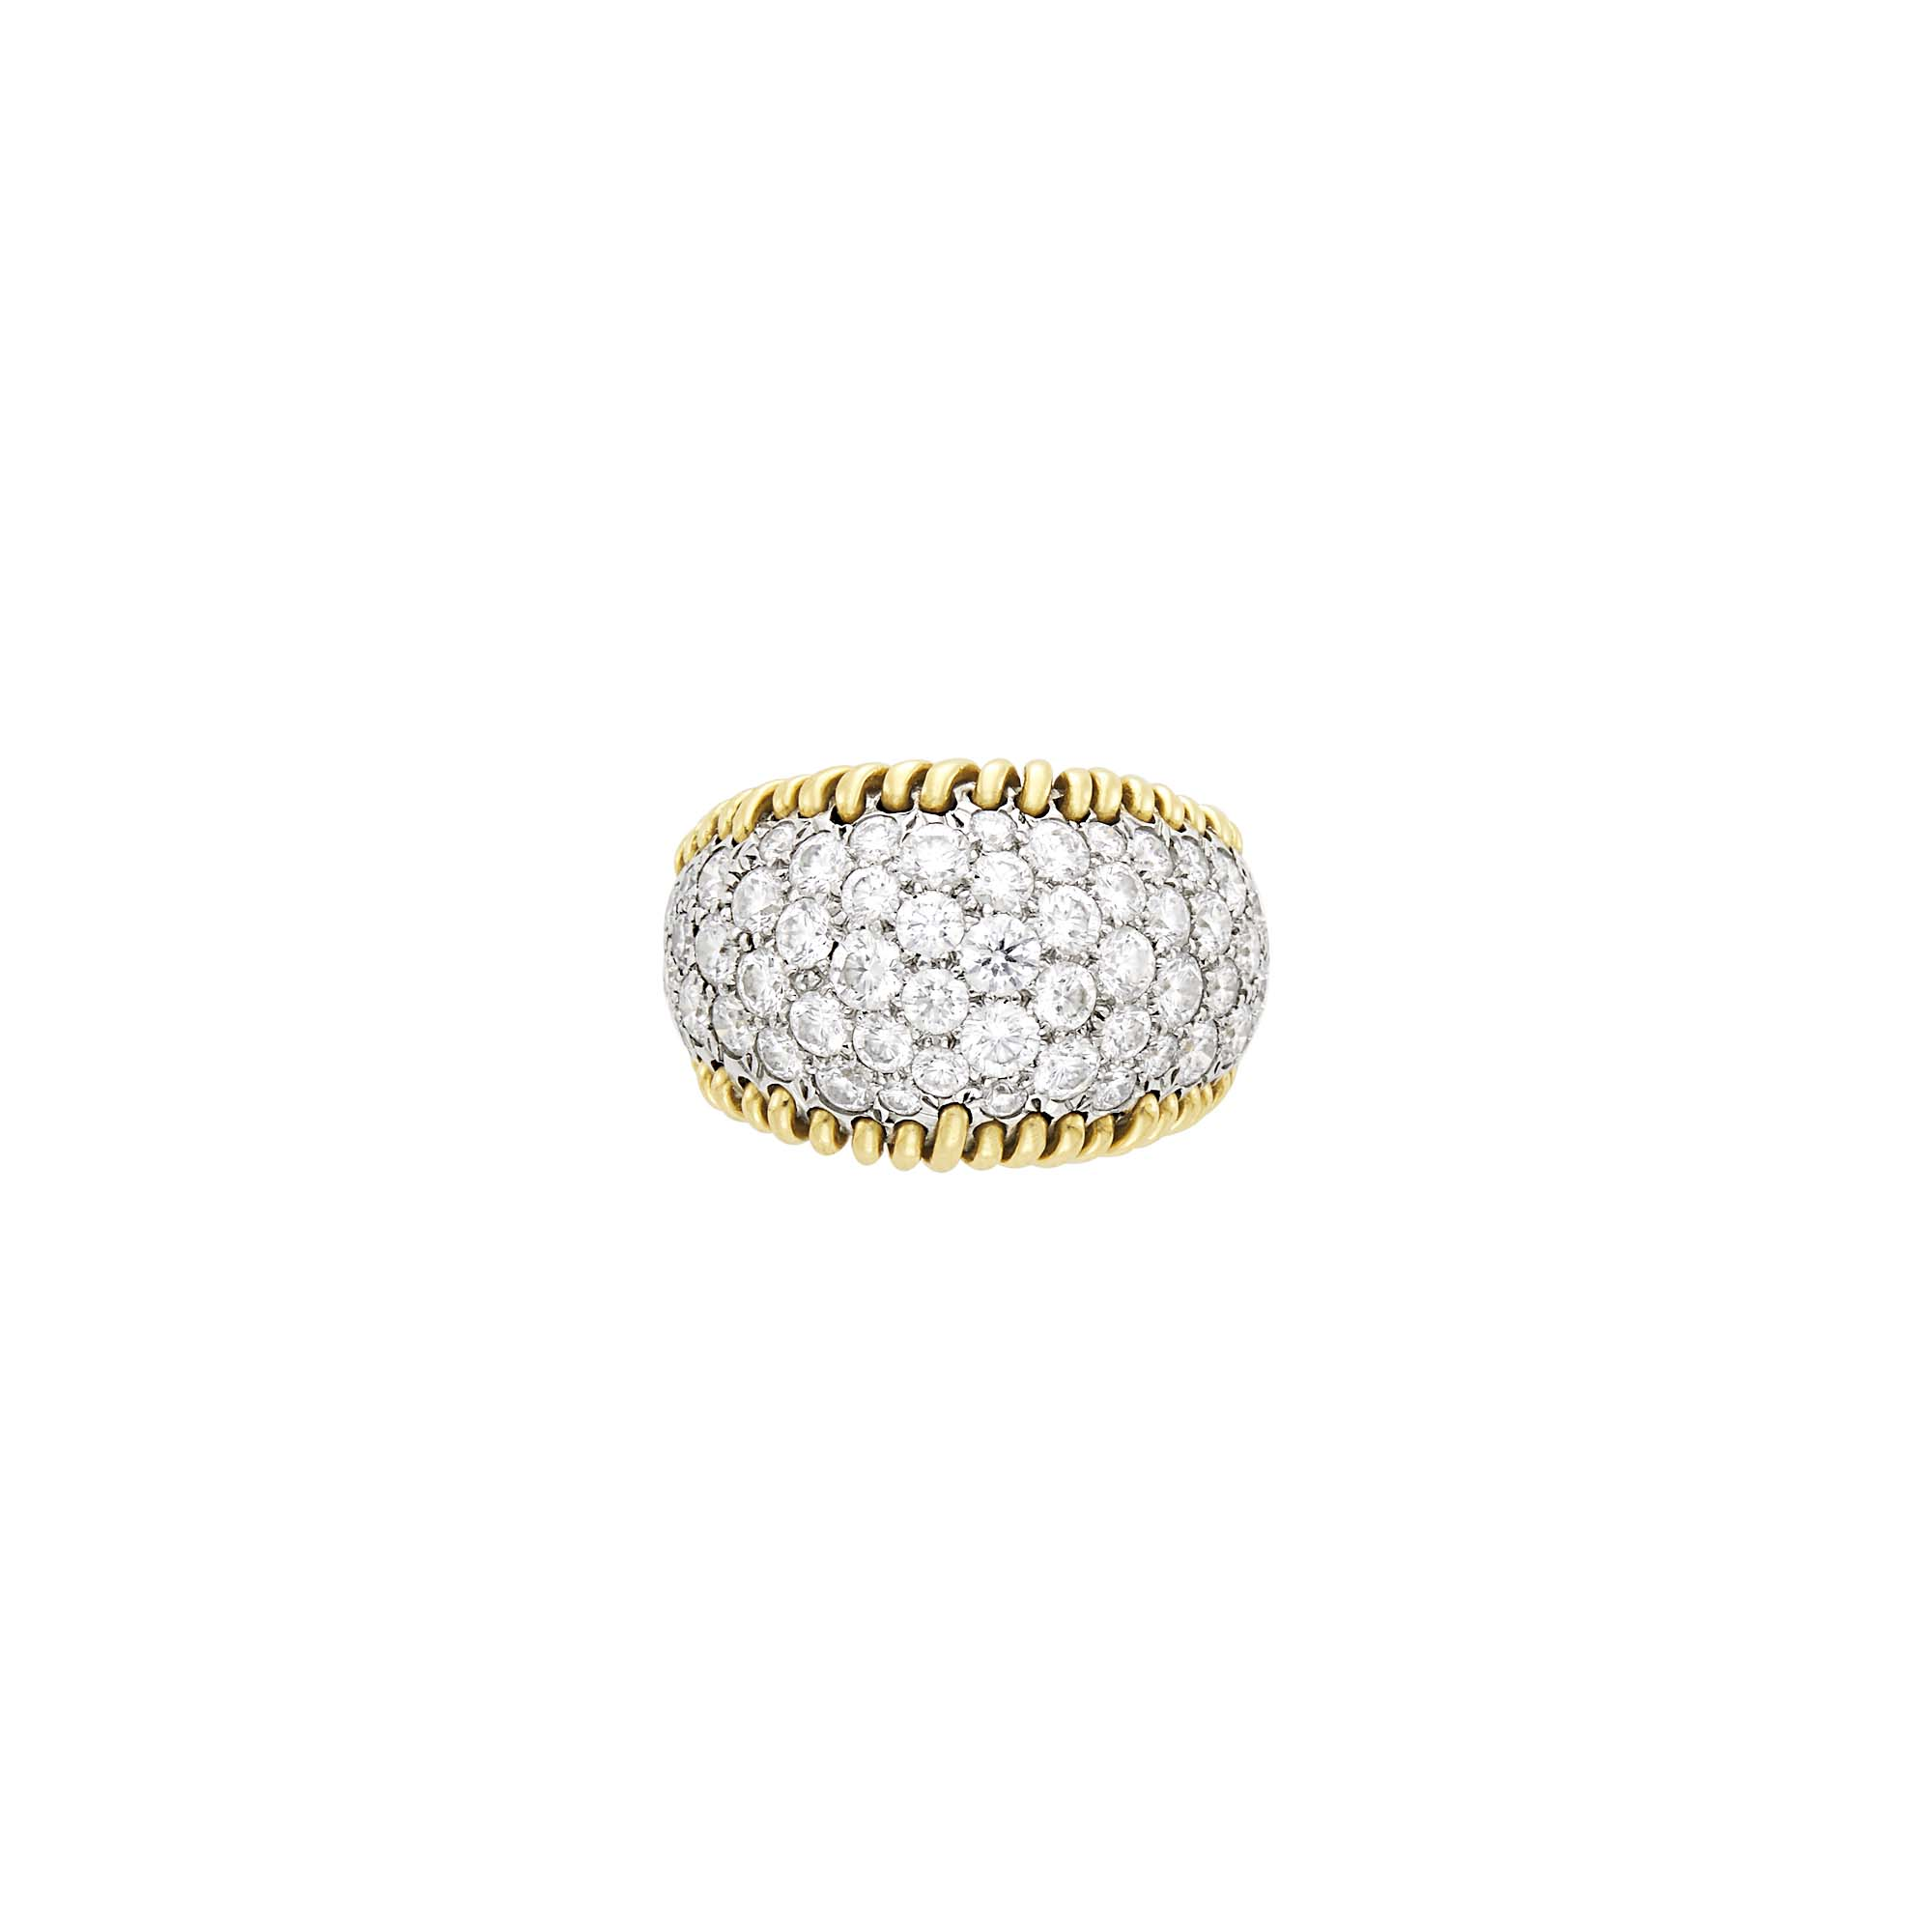 Lot image - Tiffany & Co., Schlumberger Gold, Platinum and Diamond Stitches Ring